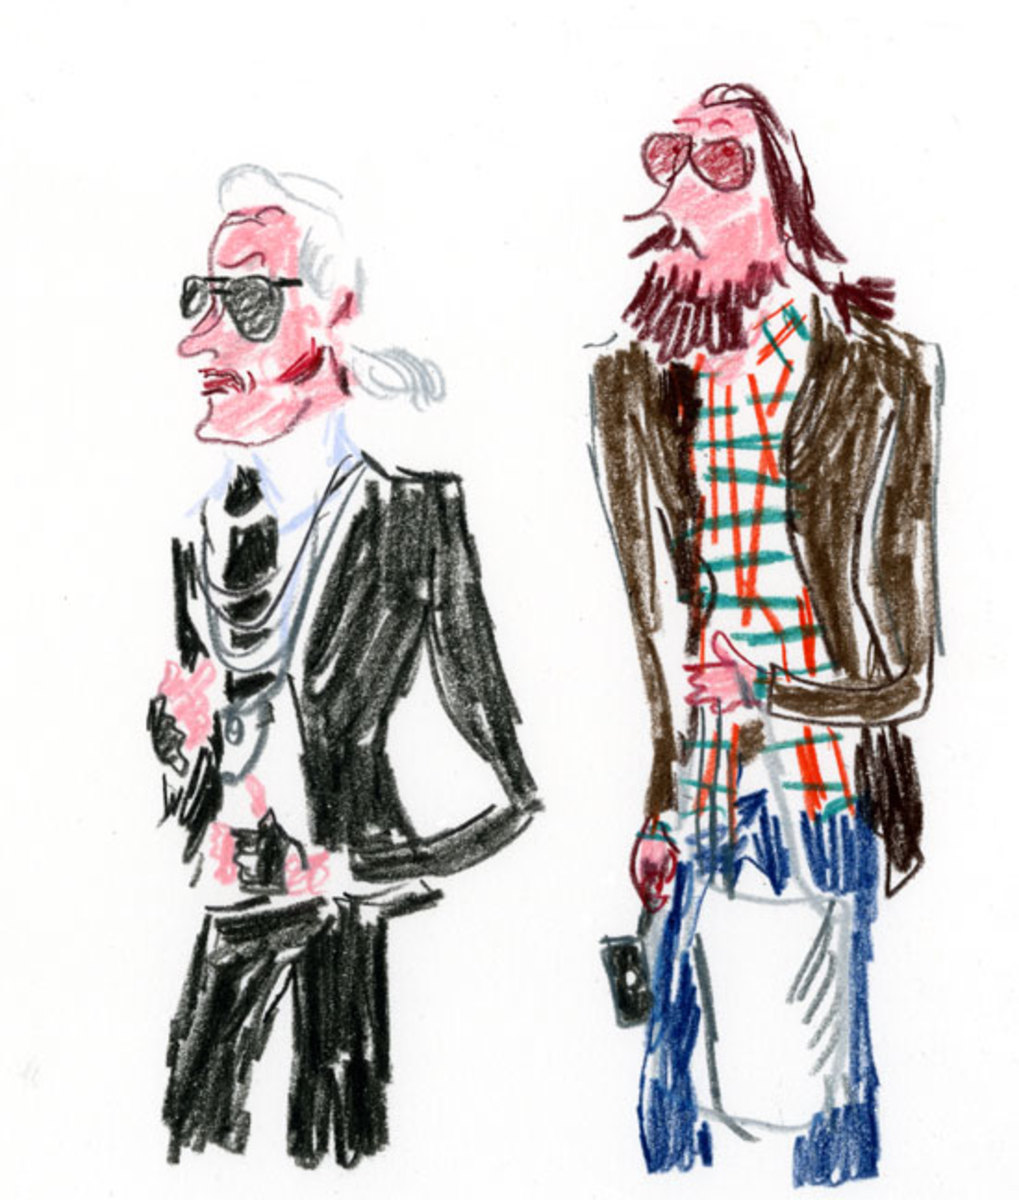 The Unknown Hipster | By Jean Philippe Delhomme